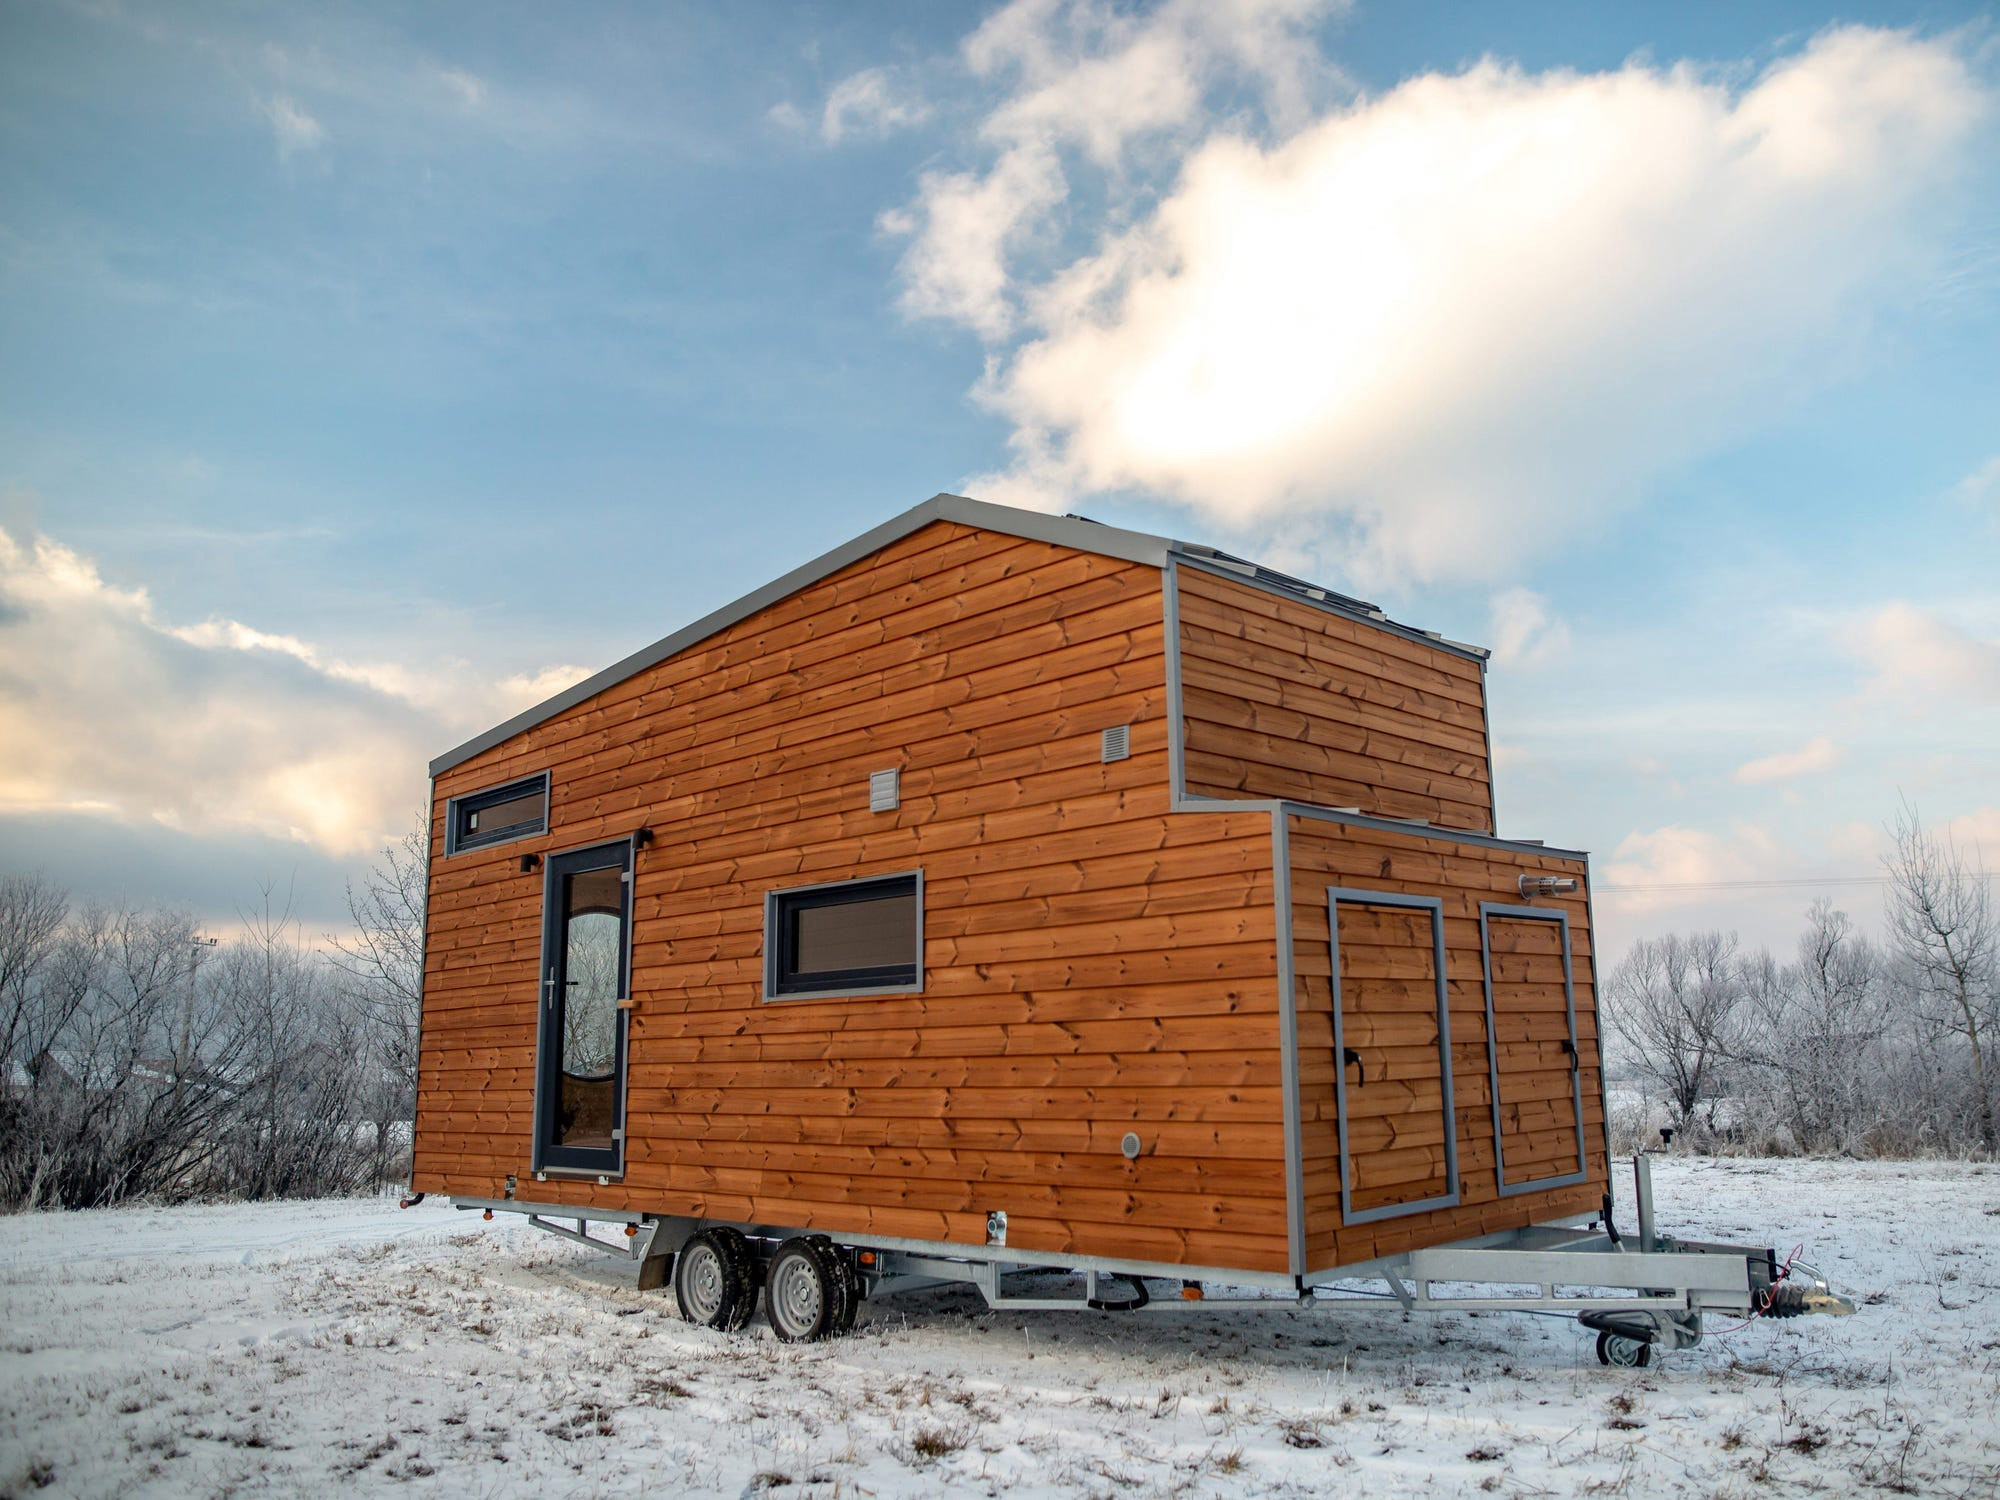 Tiny houses can be difficult in the winter.